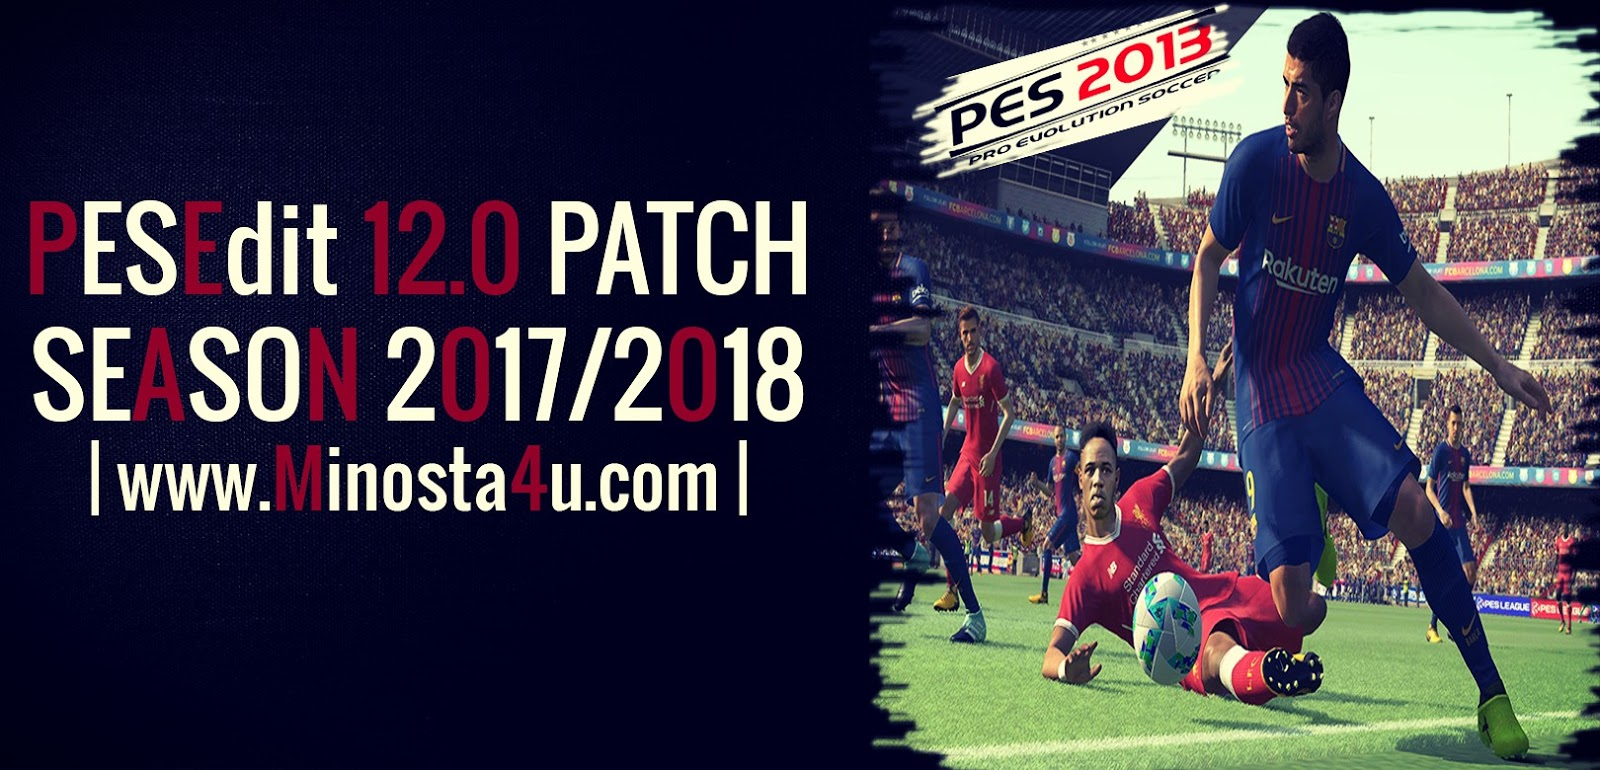 PESEdit 12.0 PATCH